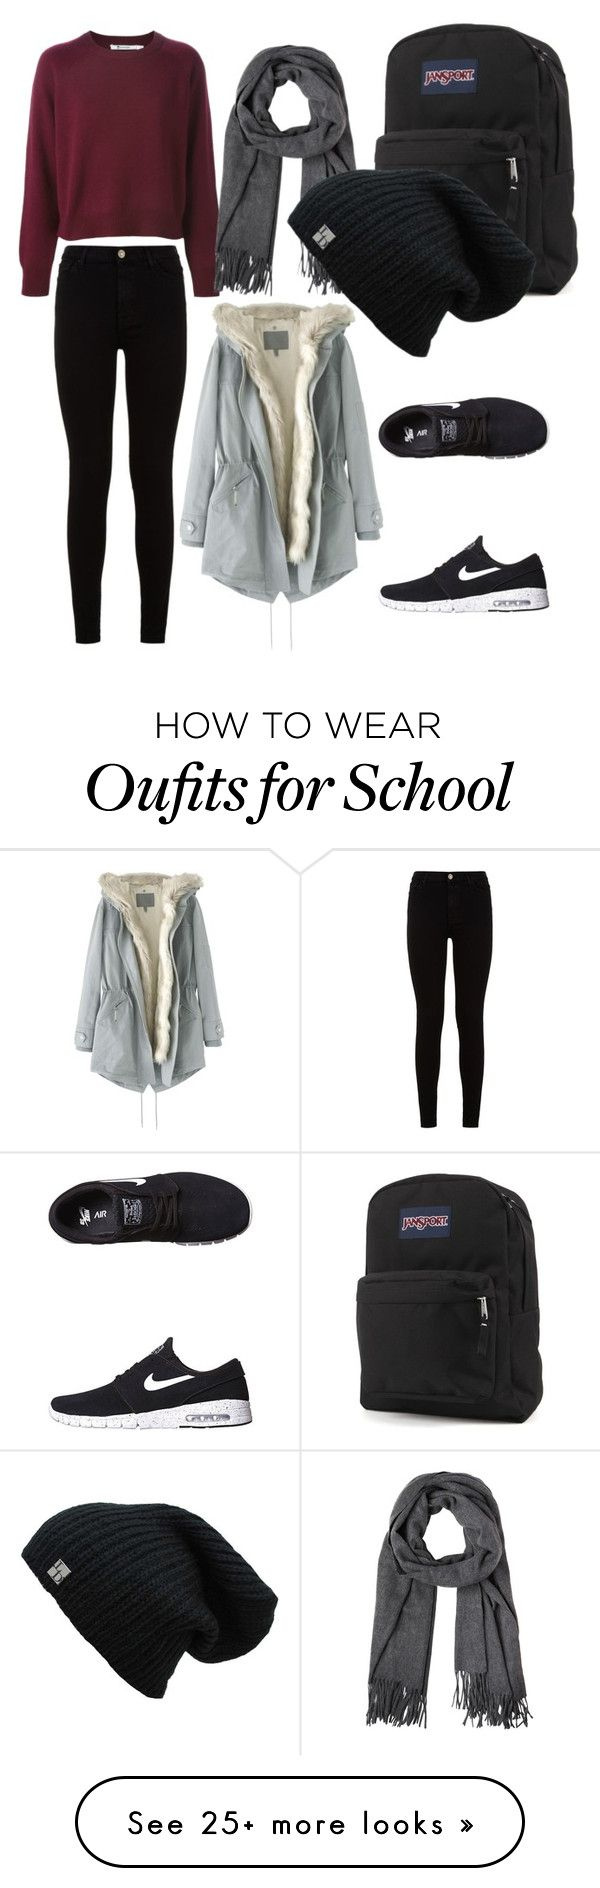 """""""school"""" by atierusyda on Polyvore featuring moda, 7 For All Mankind, NIKE, JanSport i Wrap"""